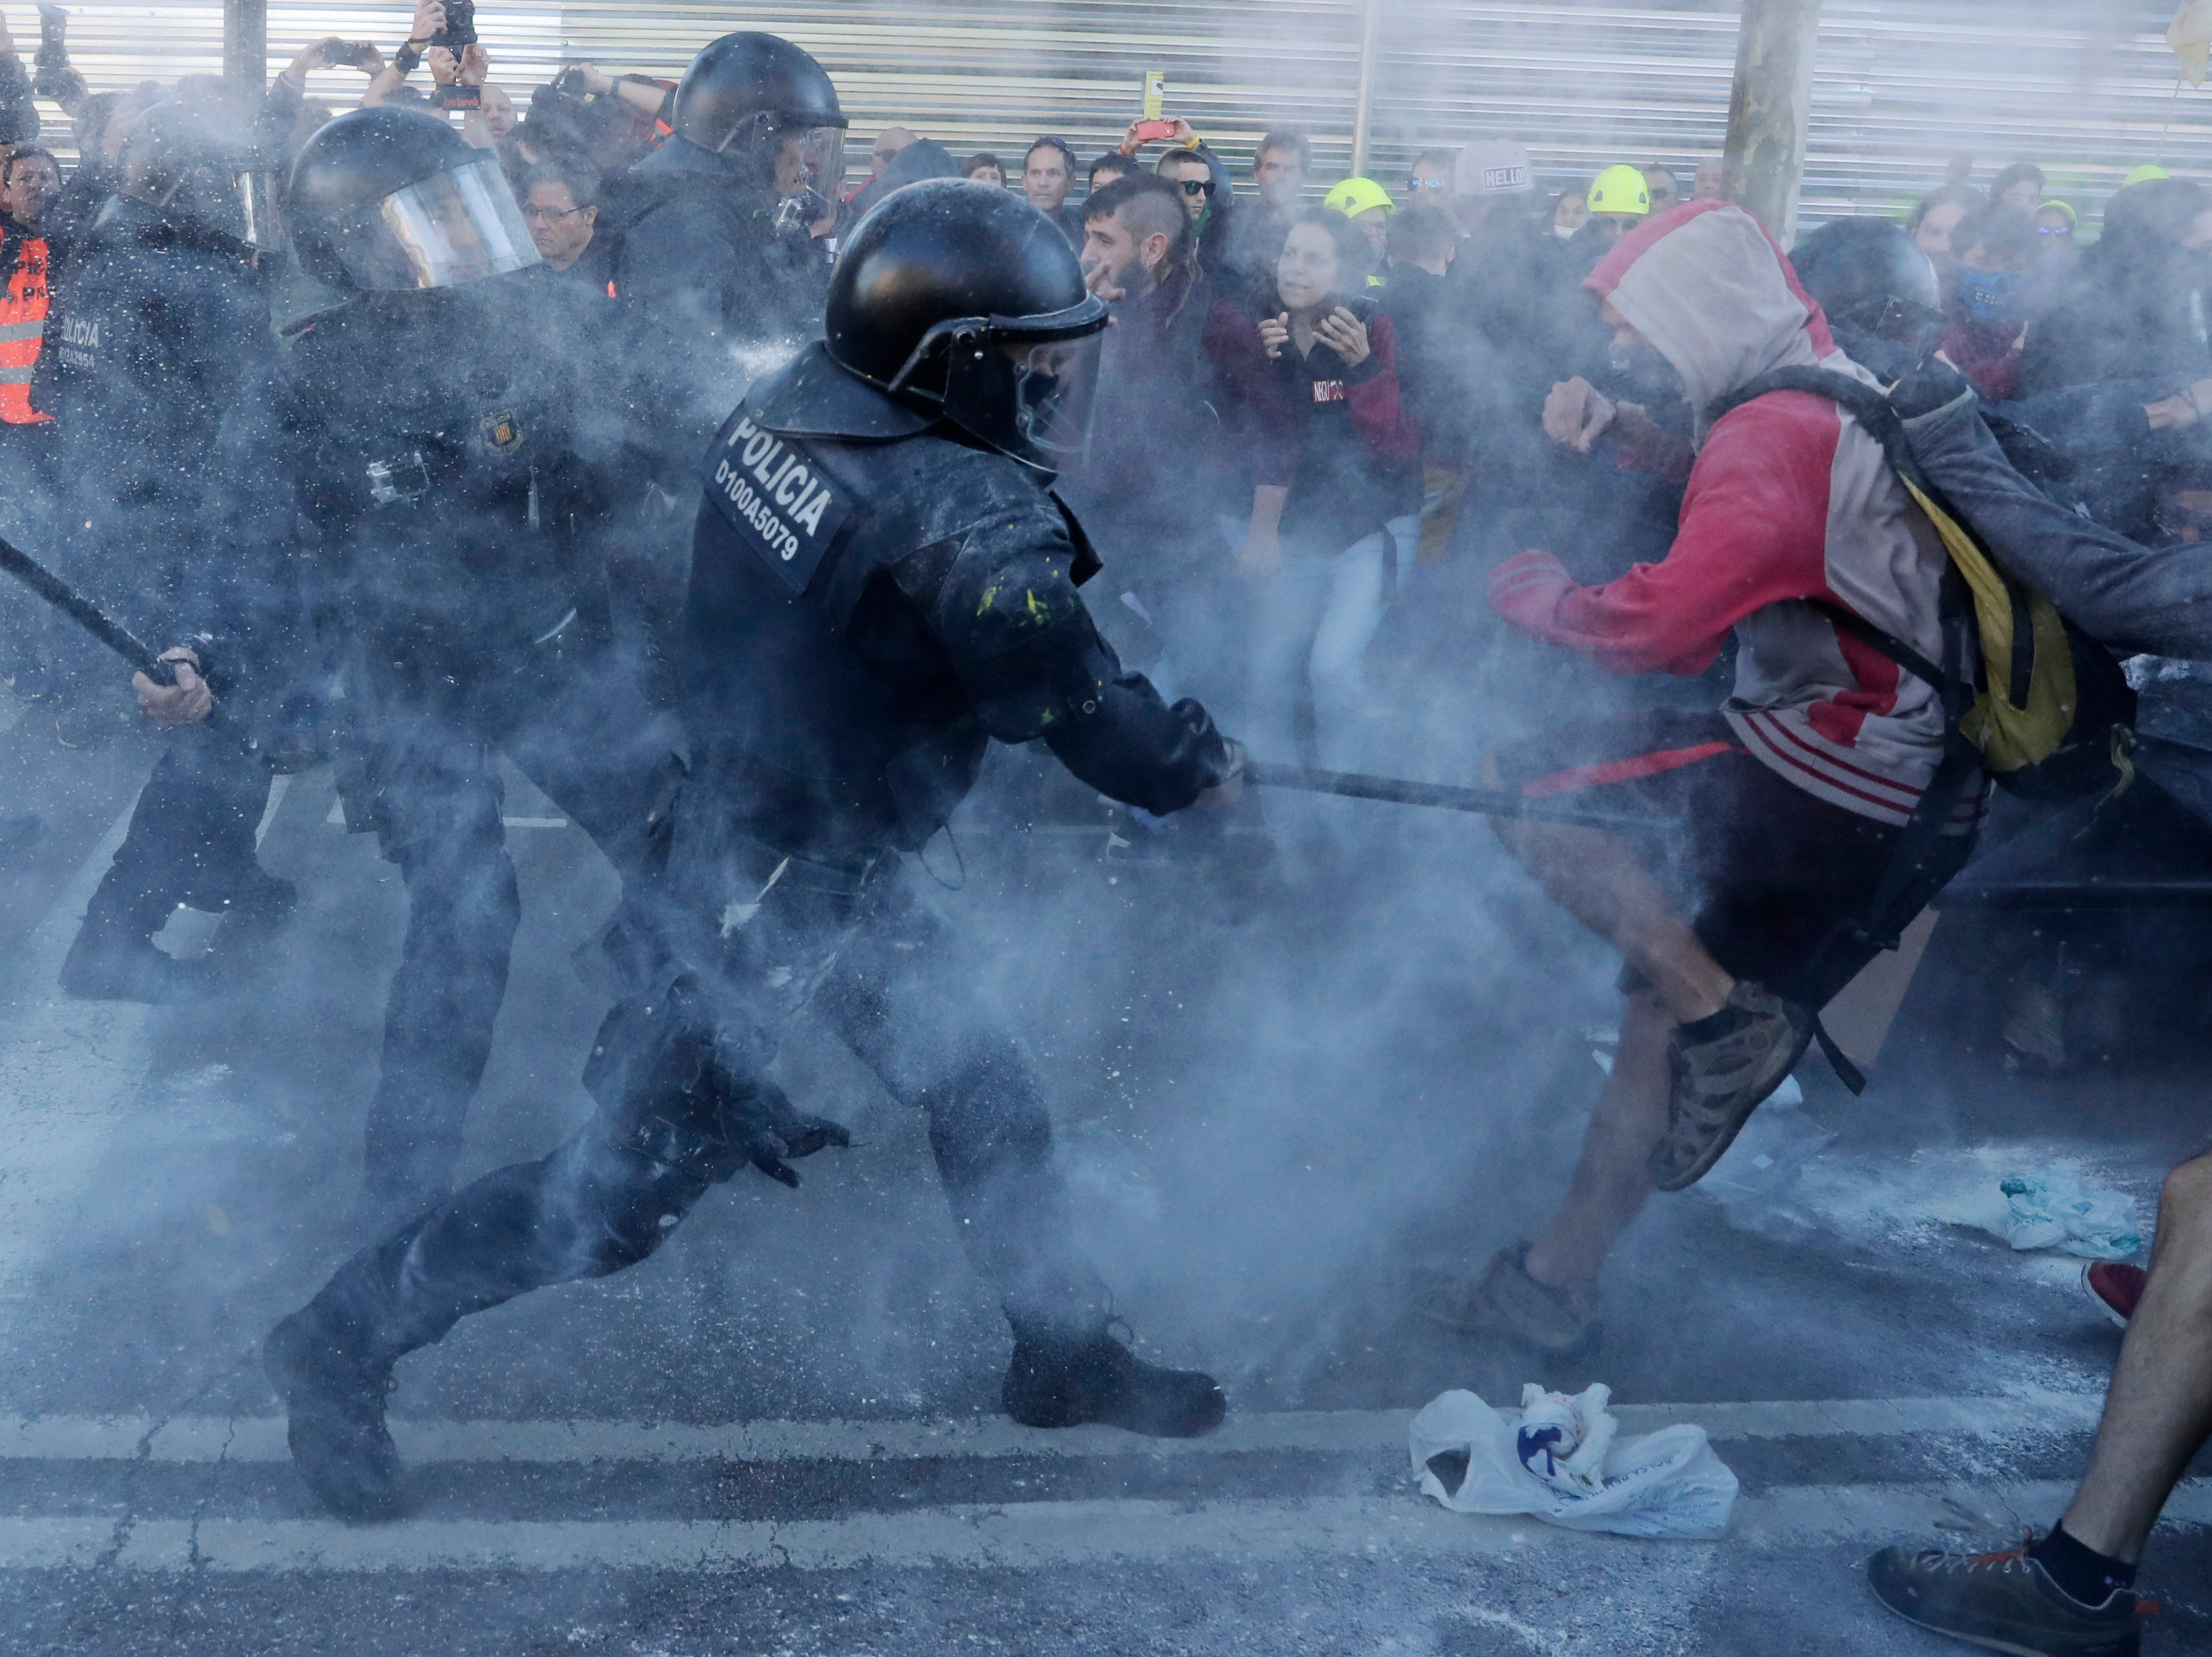 Police charge against protesters during a demonstration by Committees for the Defense of the Republic in Barcelona, Spain, on Nov. 10, 2018. The grassroots group organizes protests in Catalonia to press for their demand for independence.